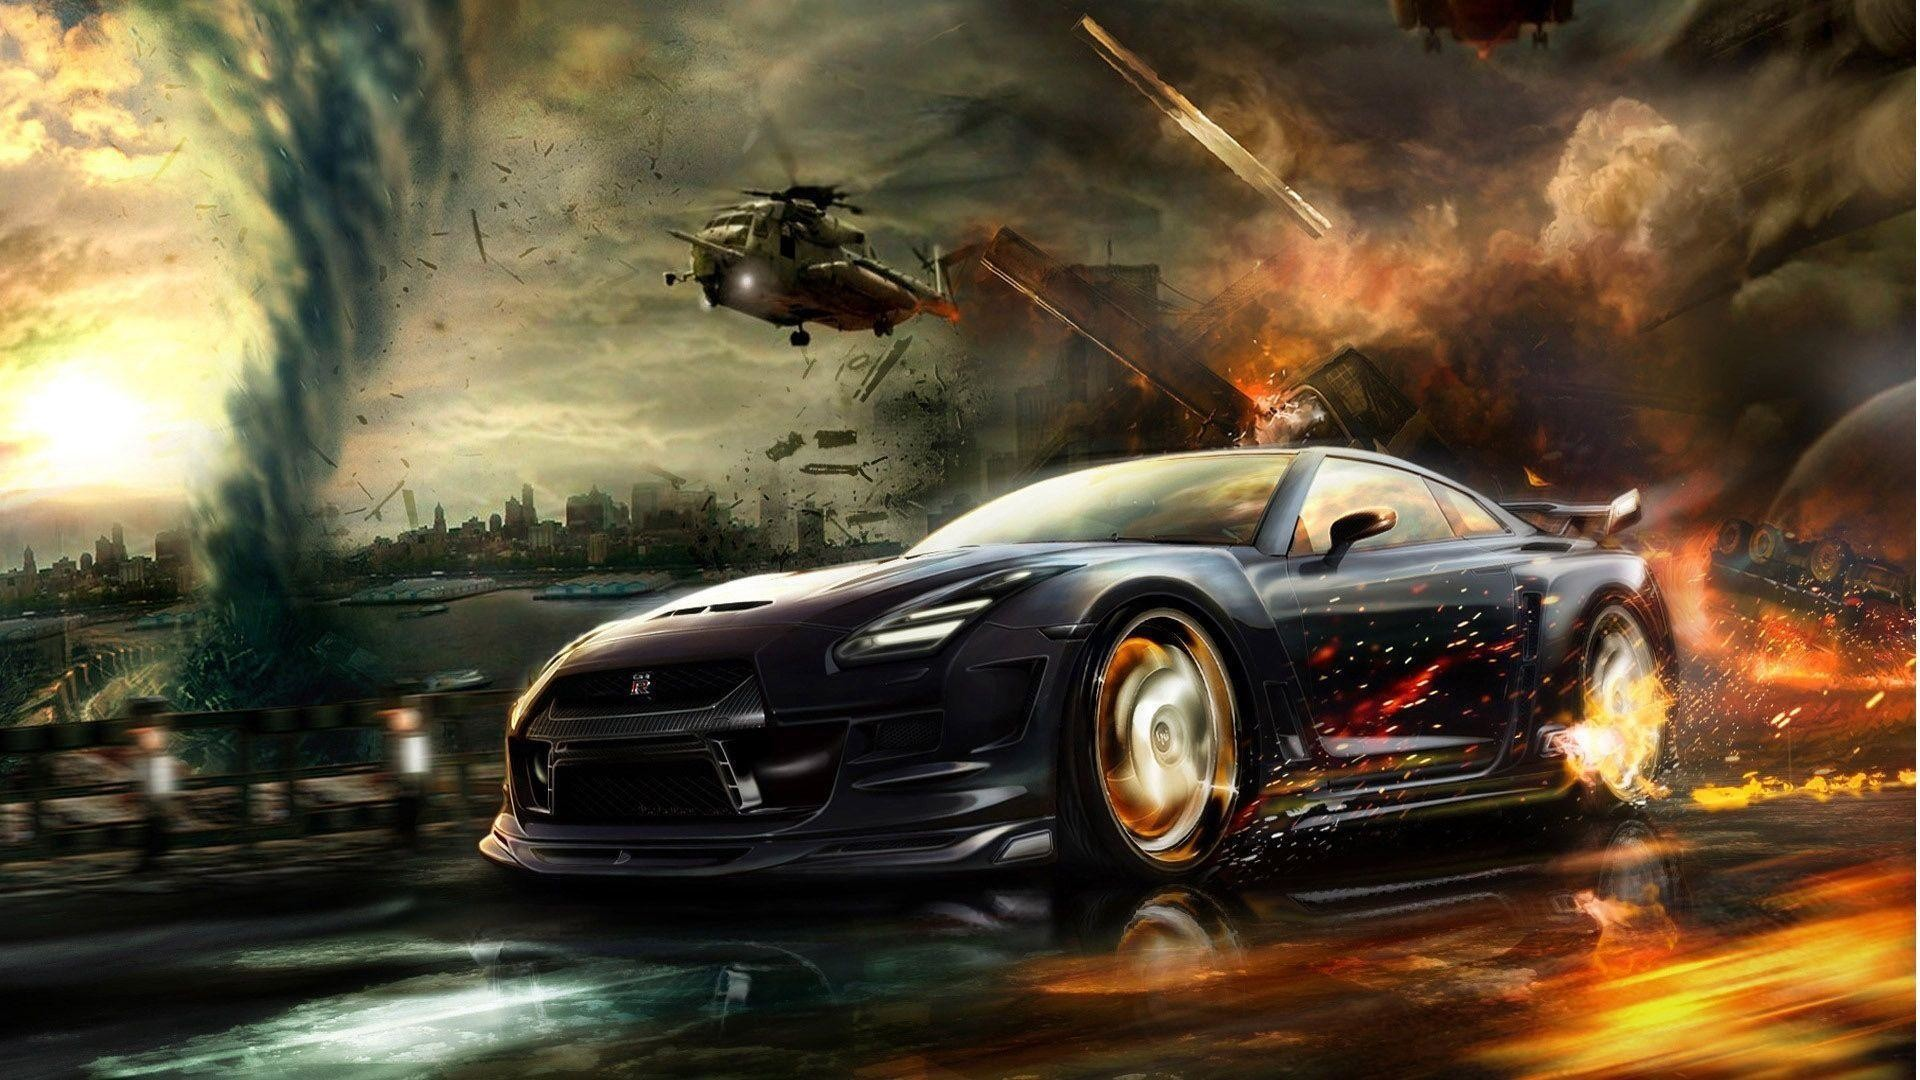 HD Car Wallpapers For Mac 1